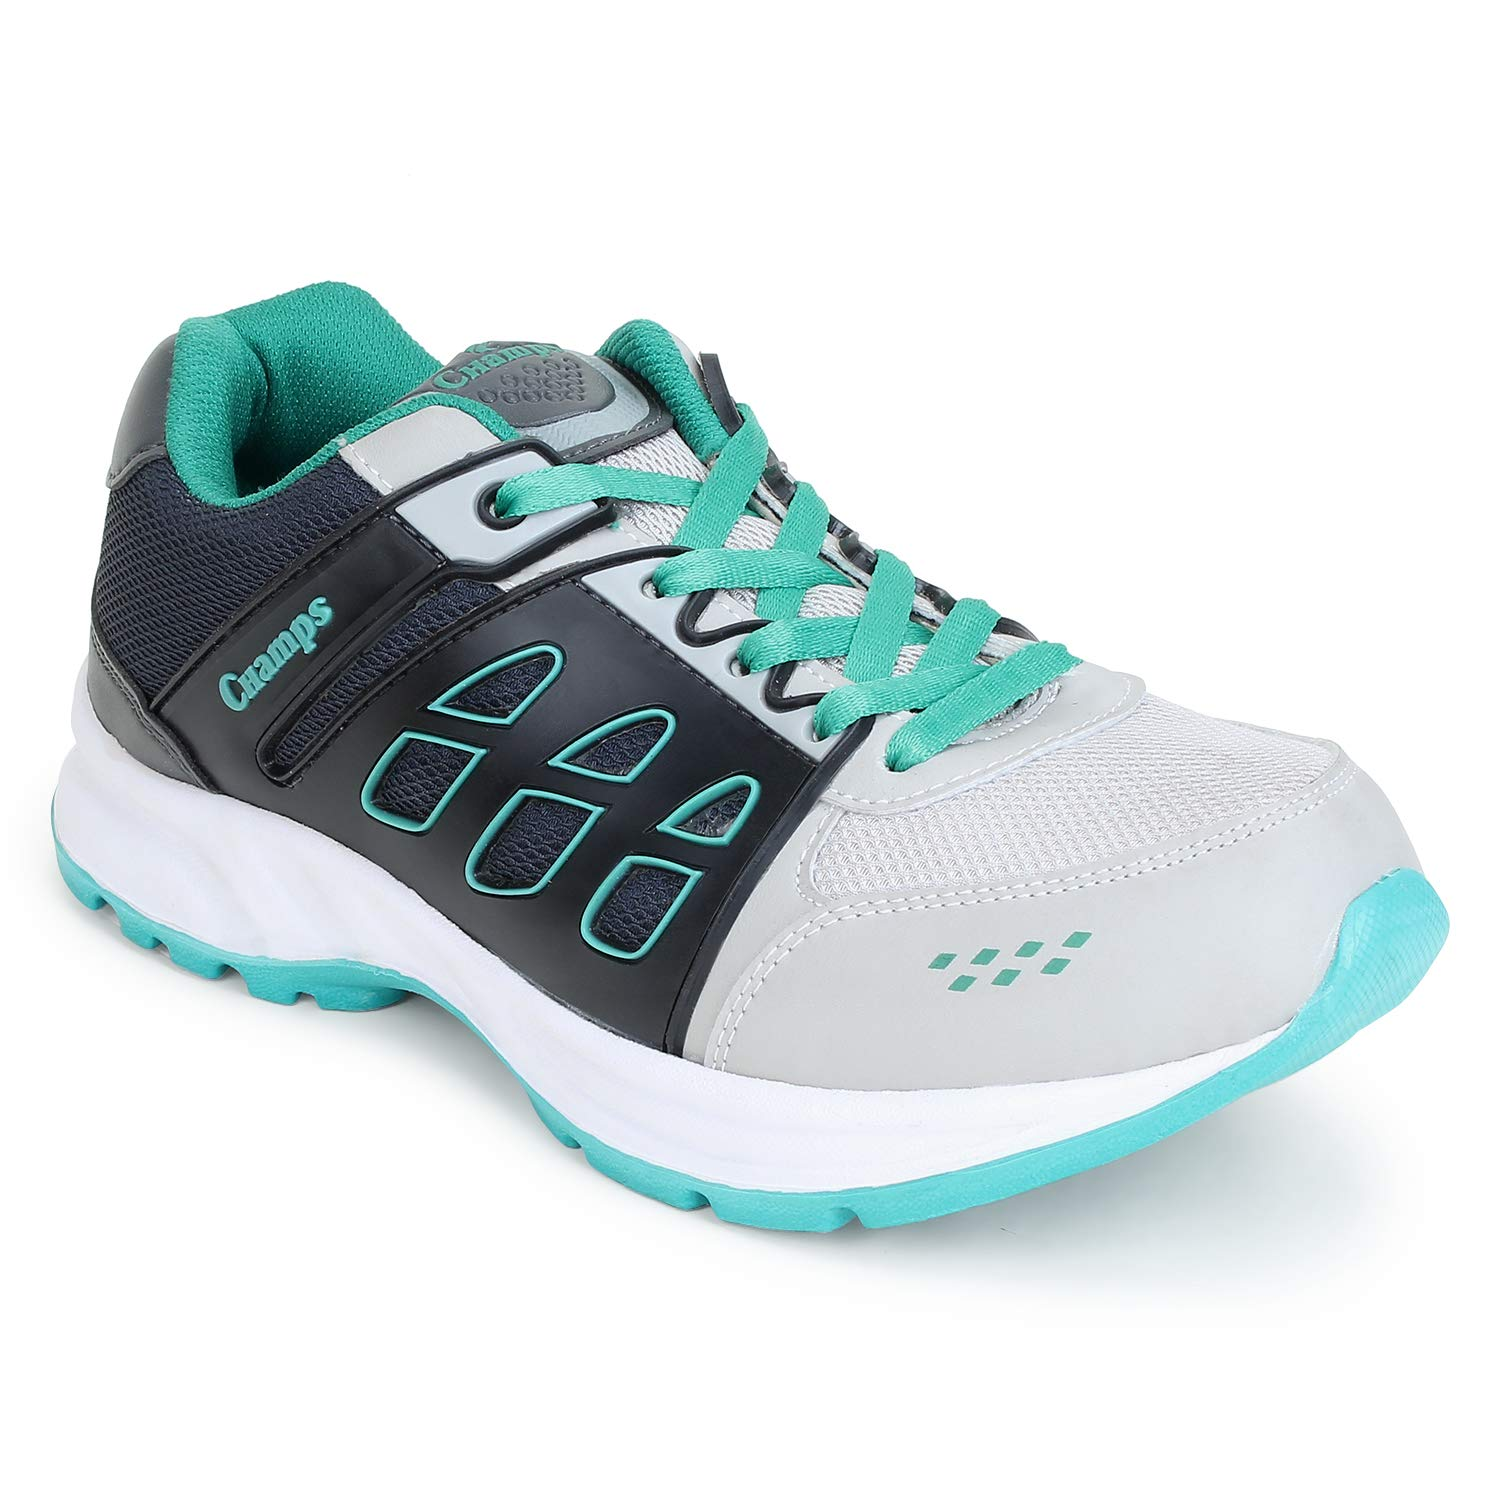 Buy Champs SIRACO Men Running Shoes at